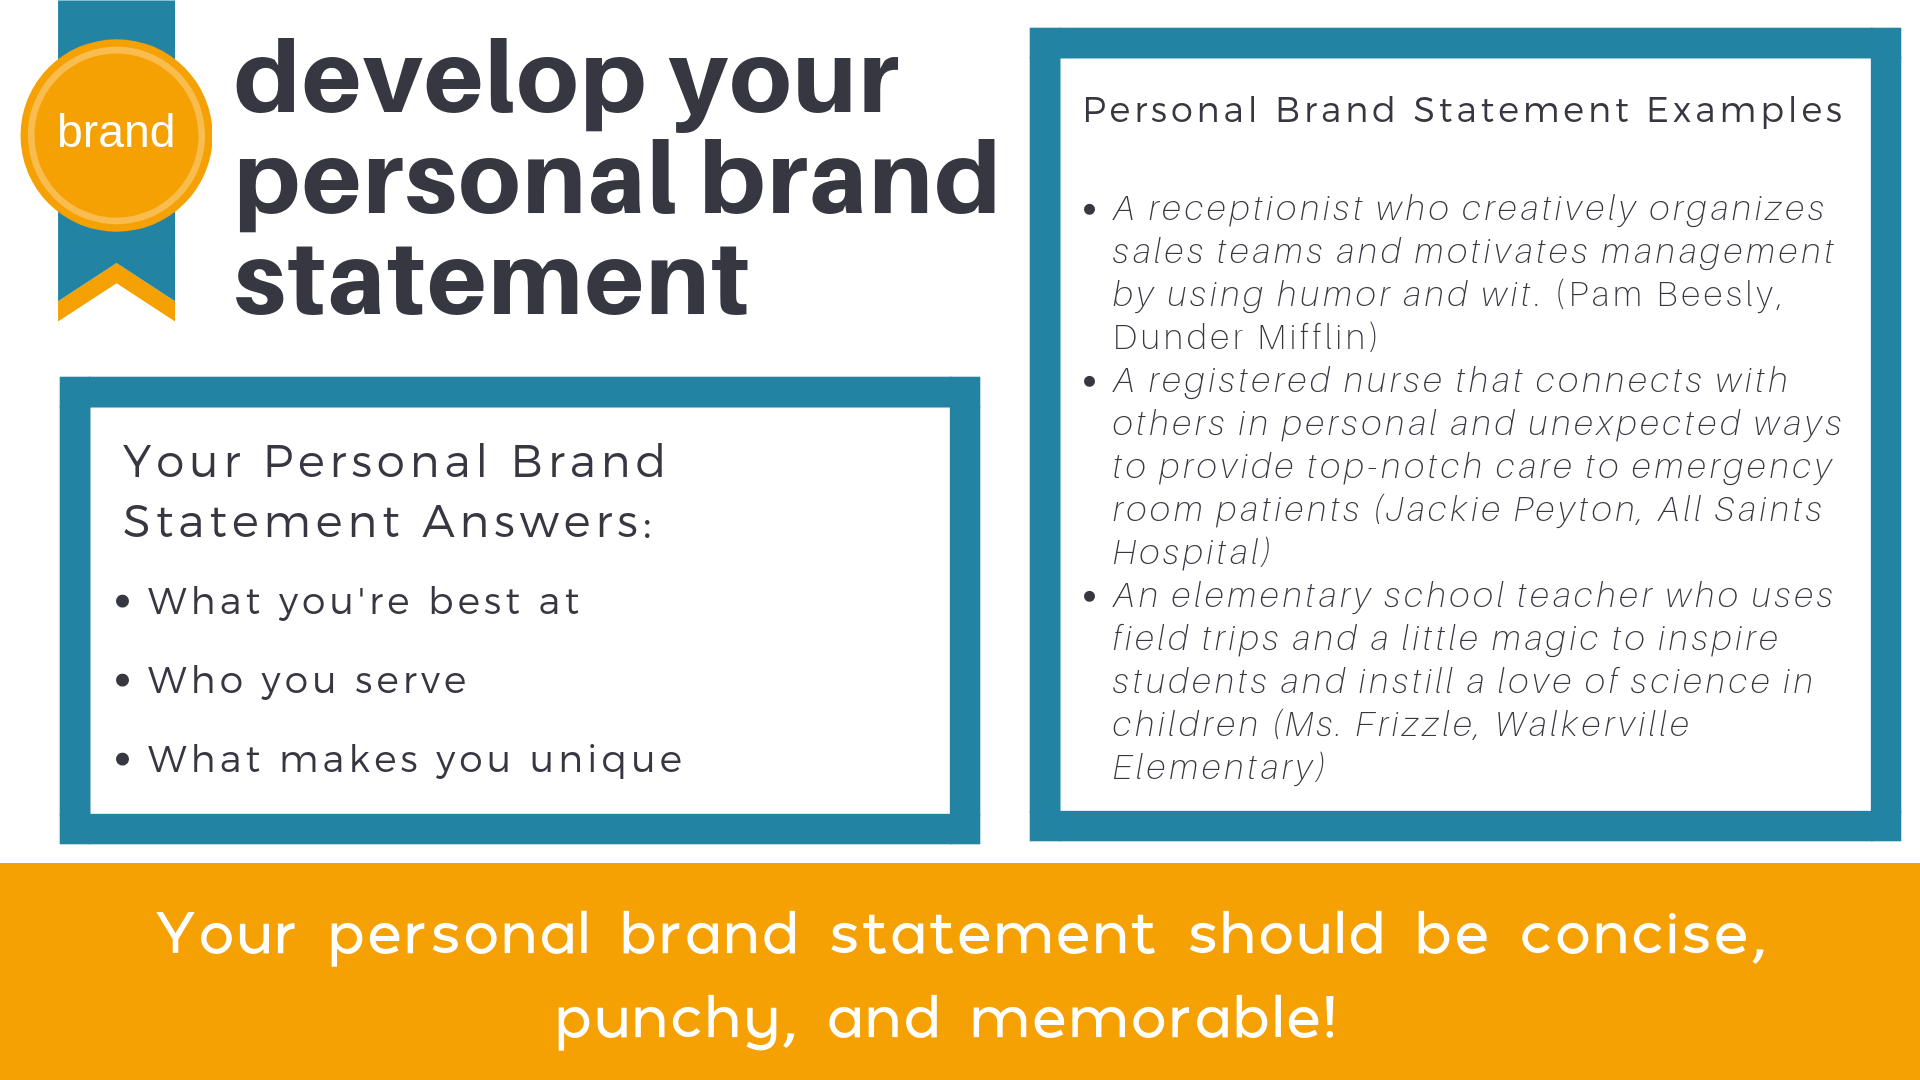 Personal Brand Statement For Beginner Example Branding Your